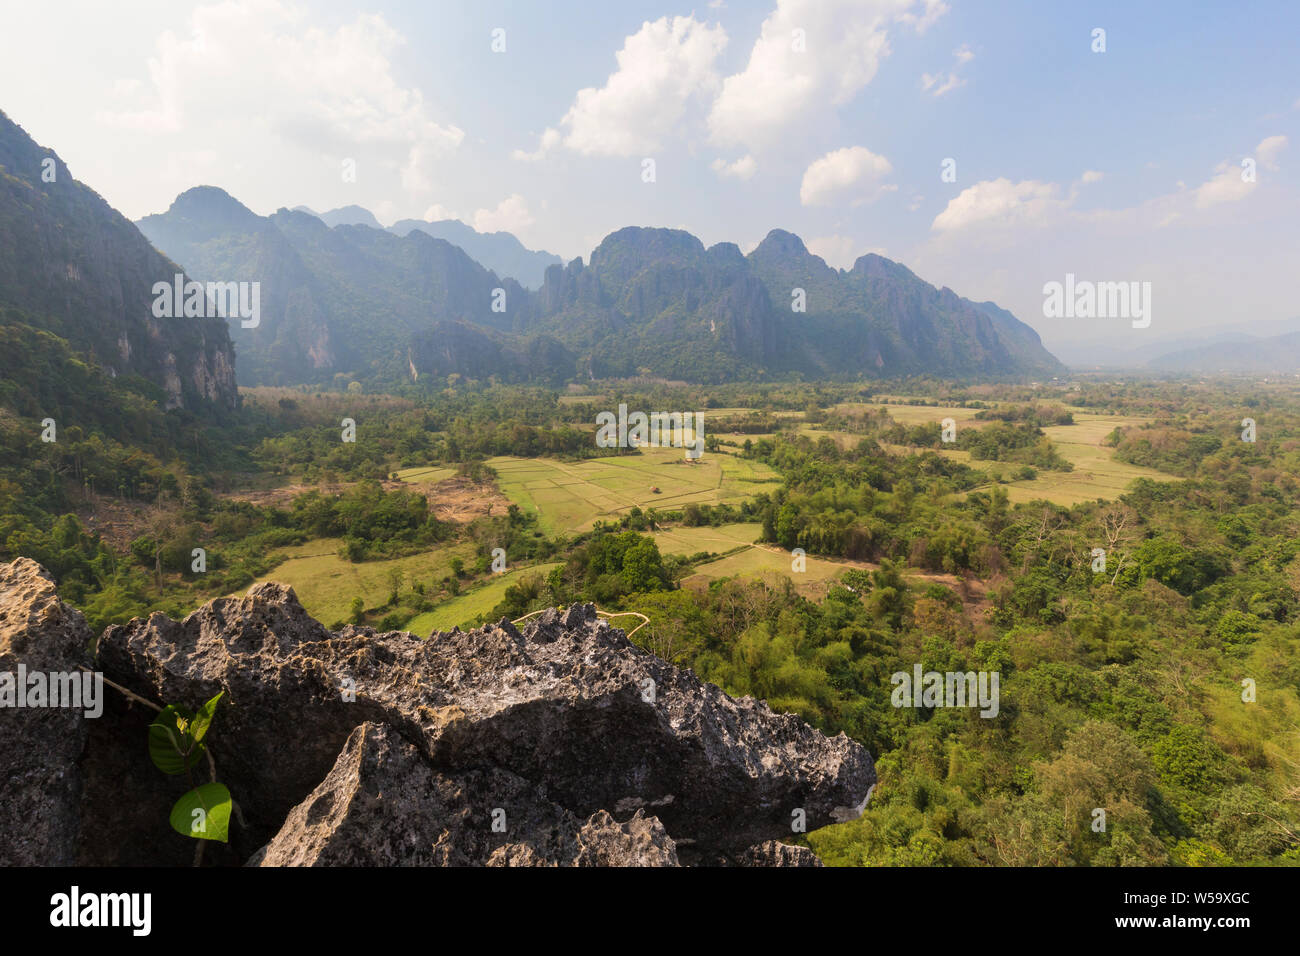 Beautiful view of fields and karst limestone mountains from above near Vang Vieng, Vientiane Province, Laos, on a sunny day. Stock Photo